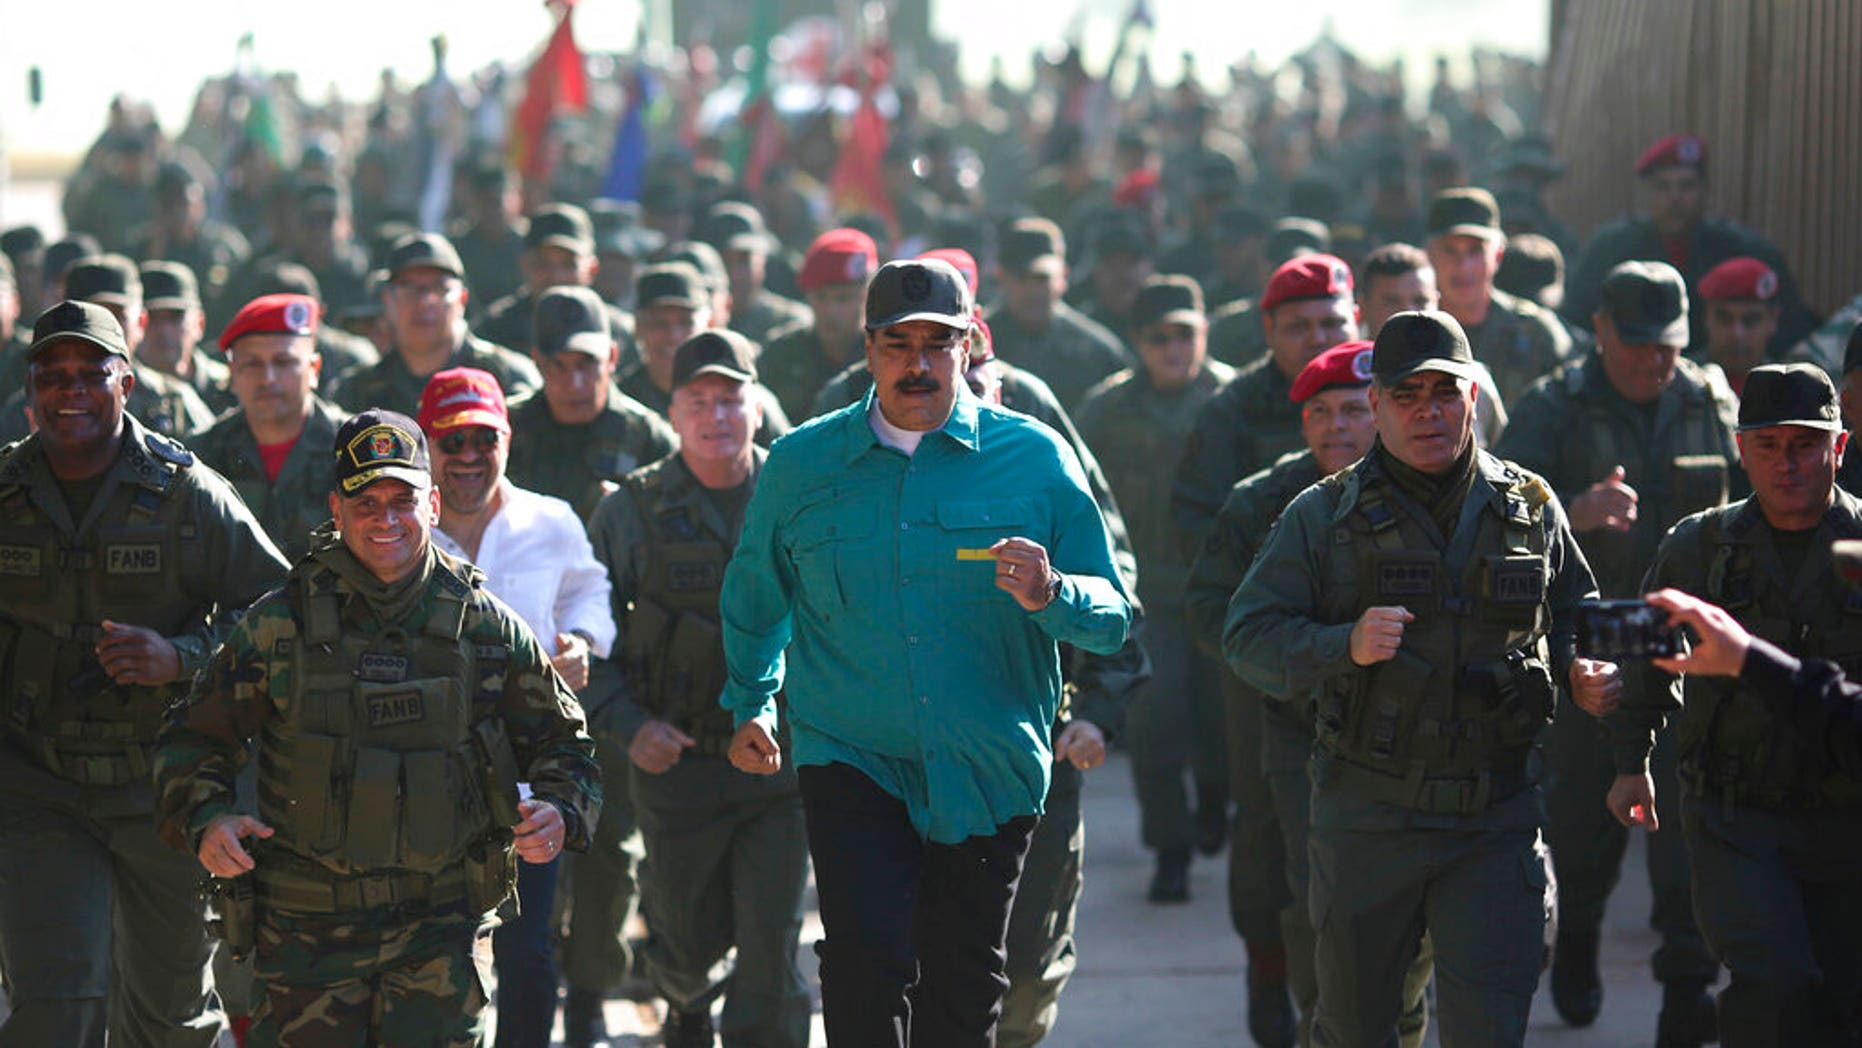 In this photo released to the media by the Miraflores presidential palace press office, Venezuelan President Nicolas Maduro jogs ahead of soldiers during a visit last month to Carabobo State. (Marcelo Garcia/Miraflores presidential palace press office via AP)